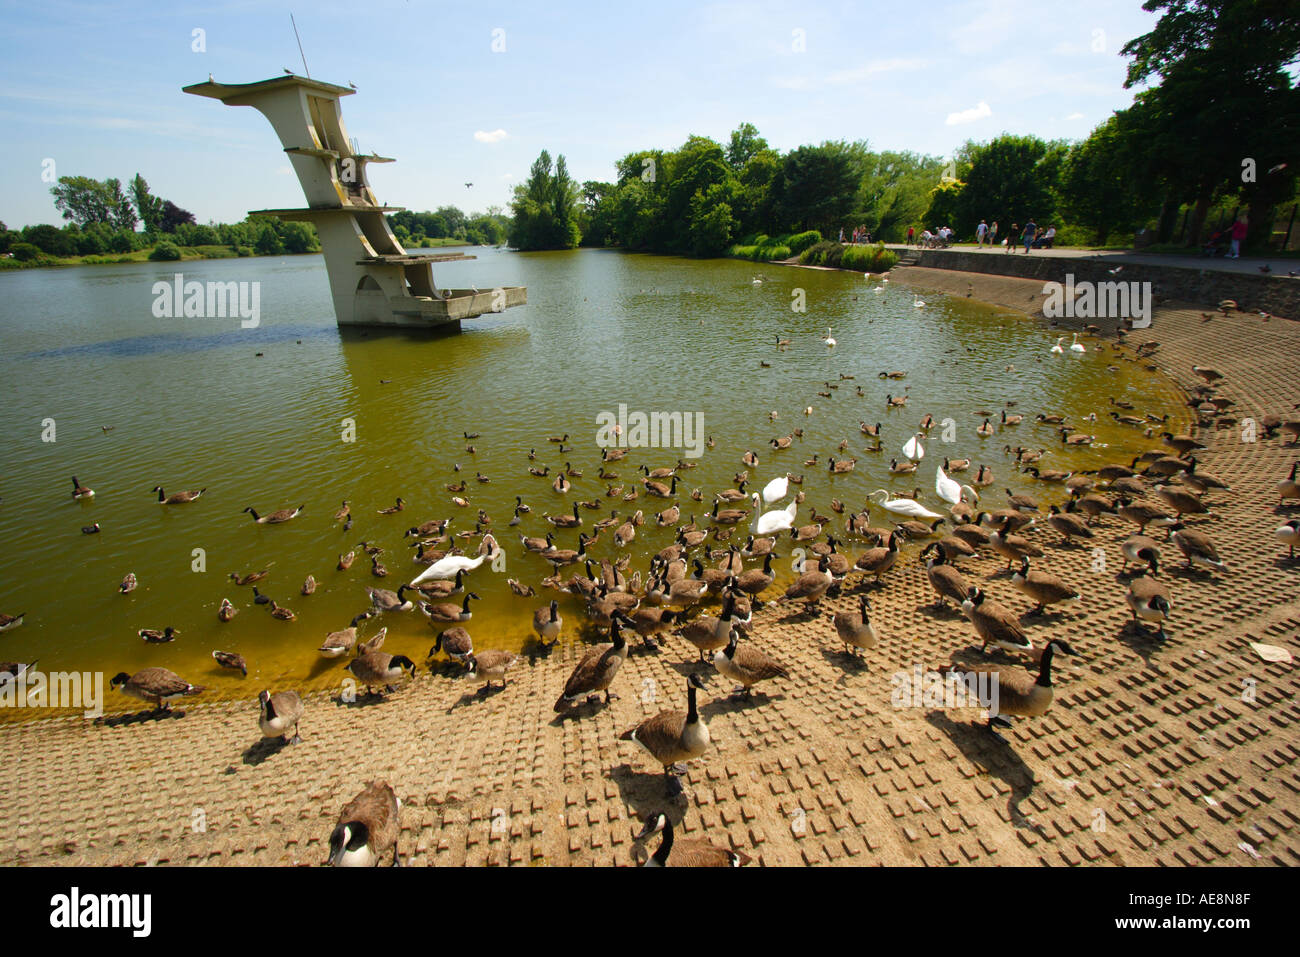 Water Country Stock Photos & Water Country Stock Images - Alamy